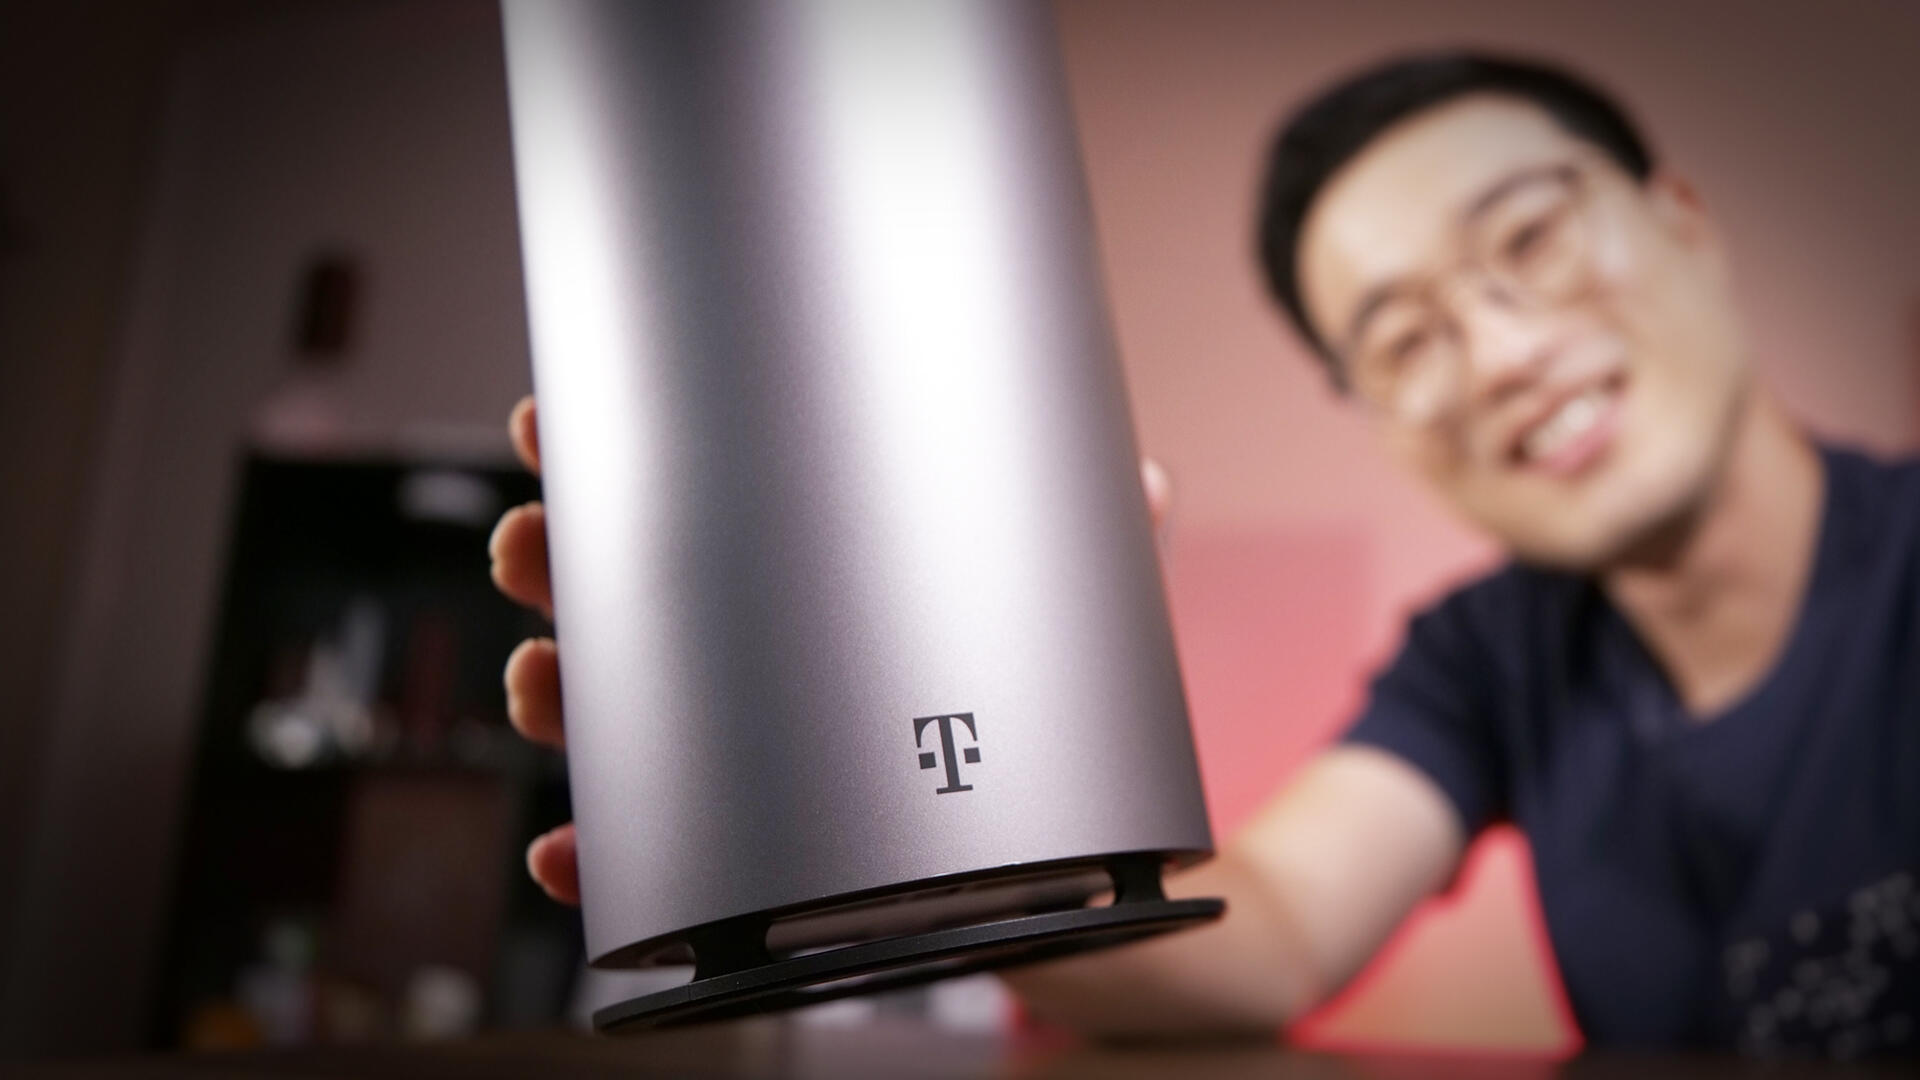 Testing out T-Mobile's home internet service